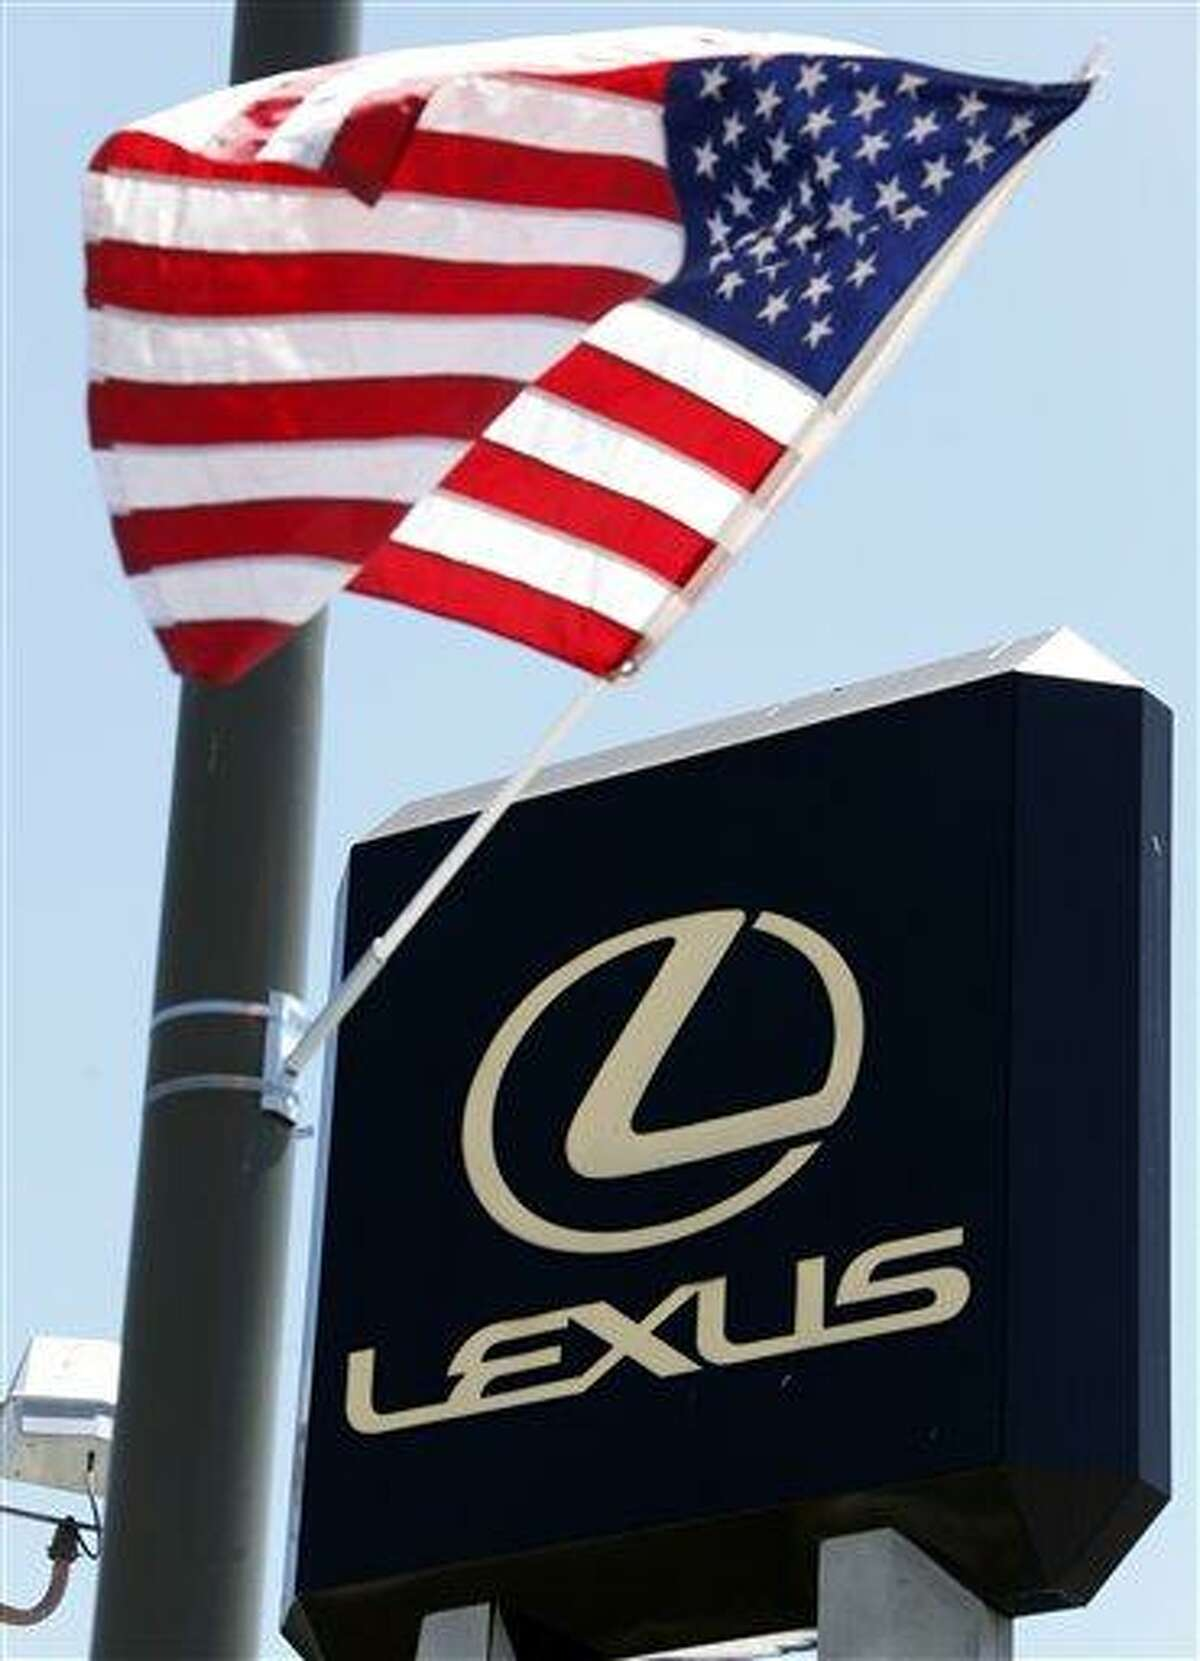 A U.S. flag is seen over a large sign at a Lexus dealership in the Woodland Hills area of Los Angeles Thursday, July 1, 2010. Toyota Motor Corp. says around 270,000 vehicles sold worldwide, including luxury Lexus sedans, have faulty engines. It did not say whether it would recall the vehicles. (AP Photo/Reed Saxon)